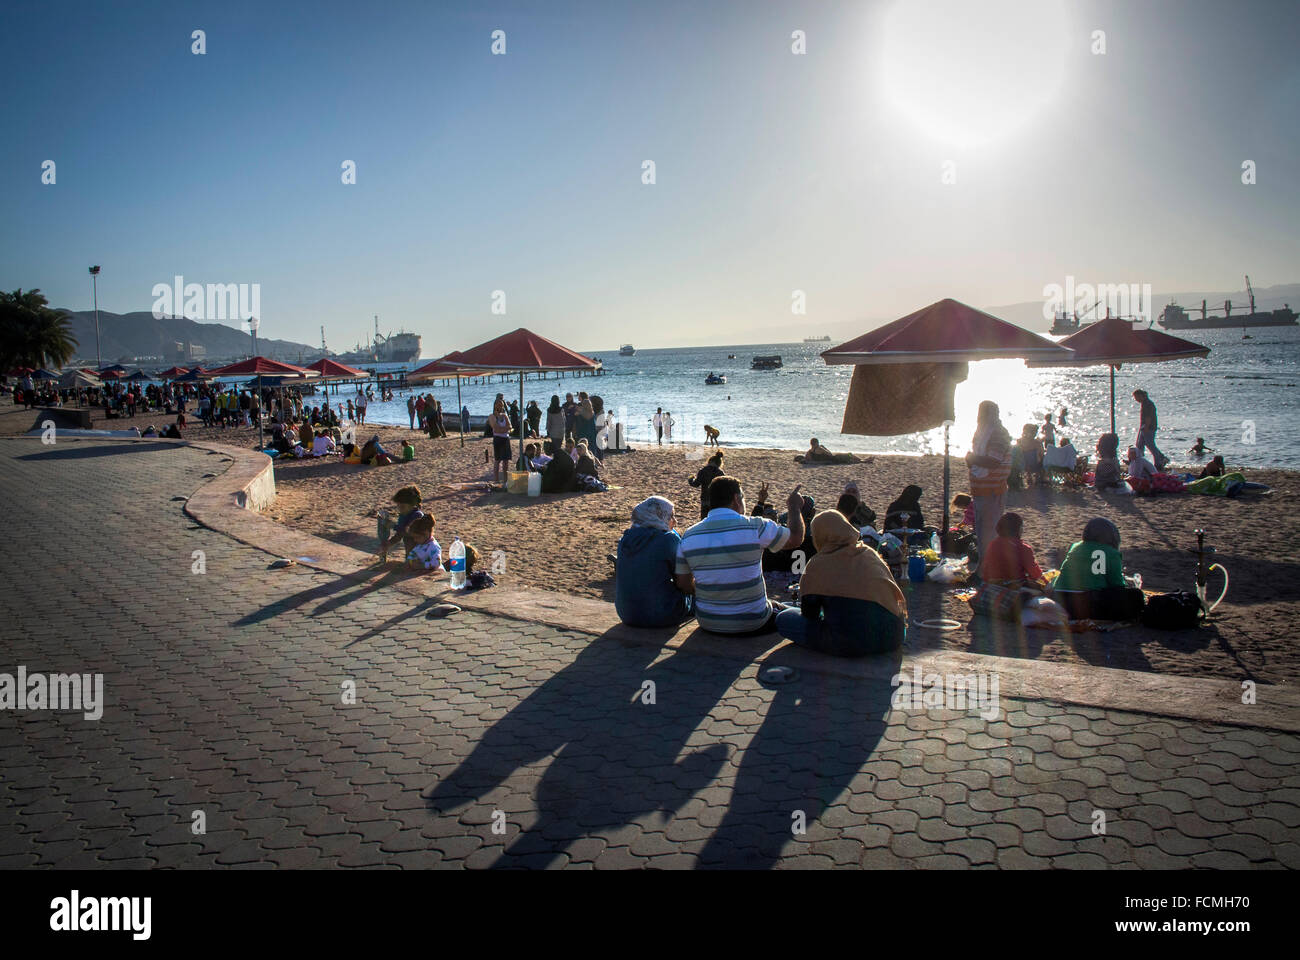 The public beach in Aqaba, Jordan. - Stock Image